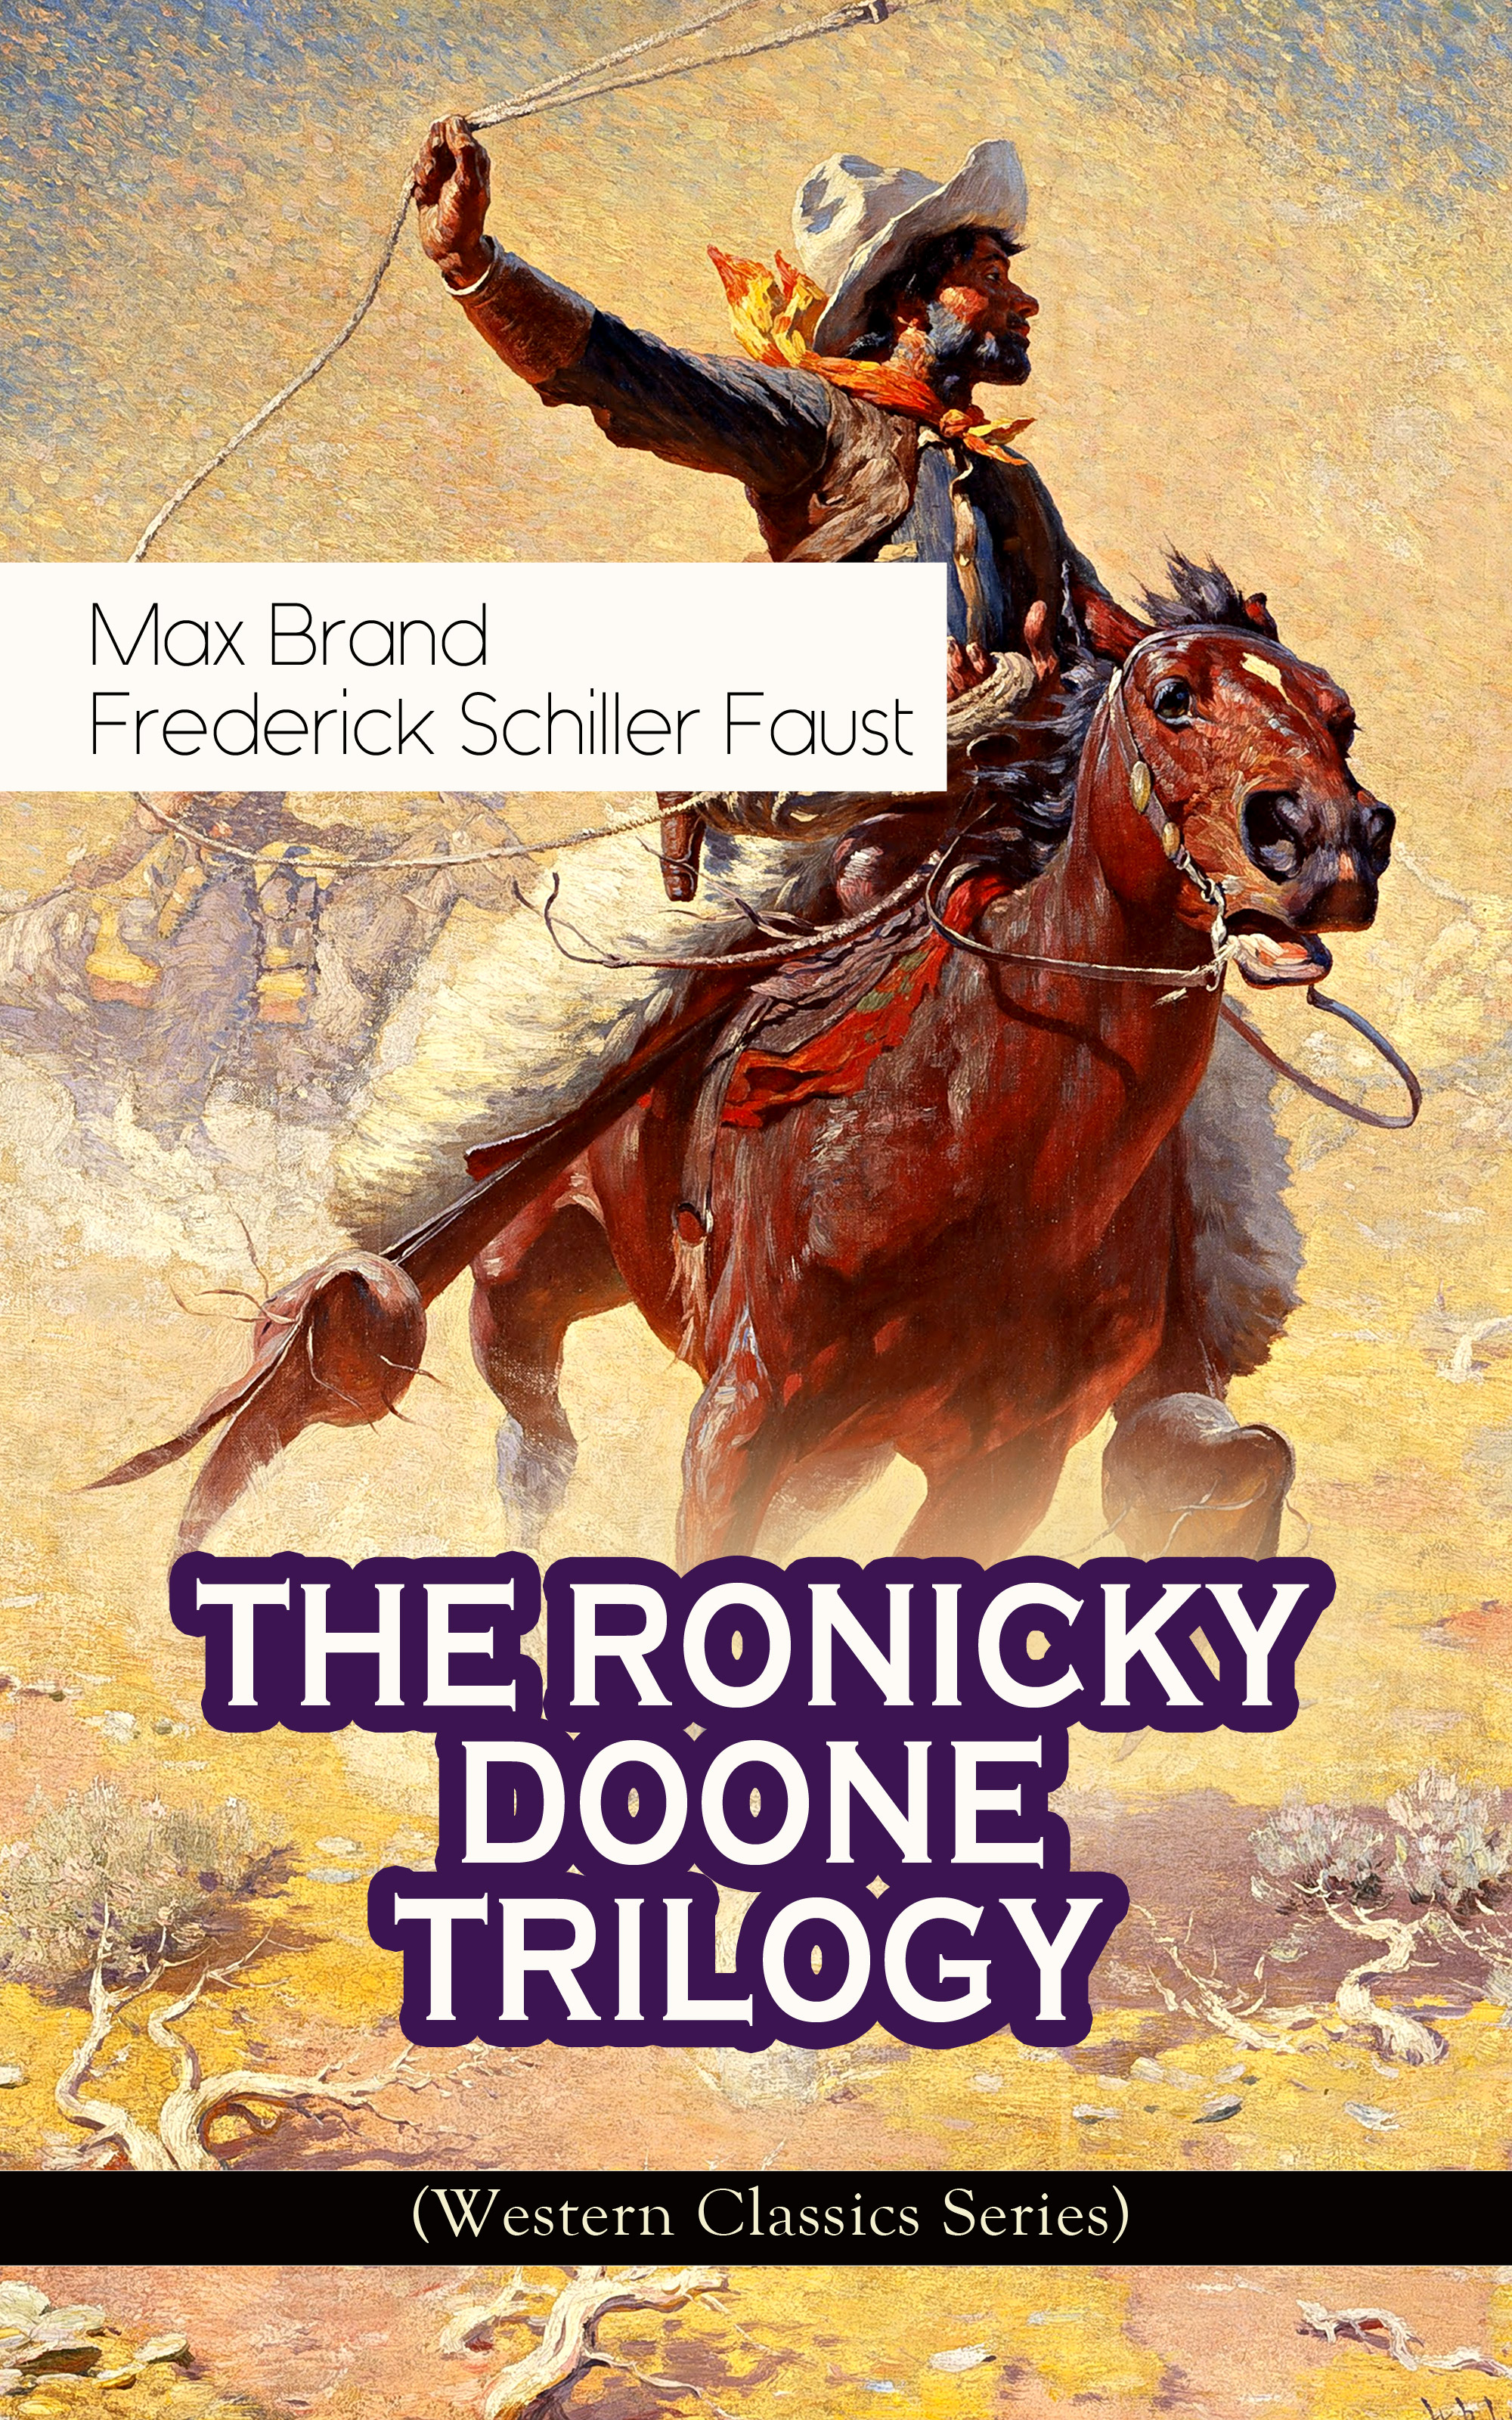 the ronicky doone trilogy western classics series